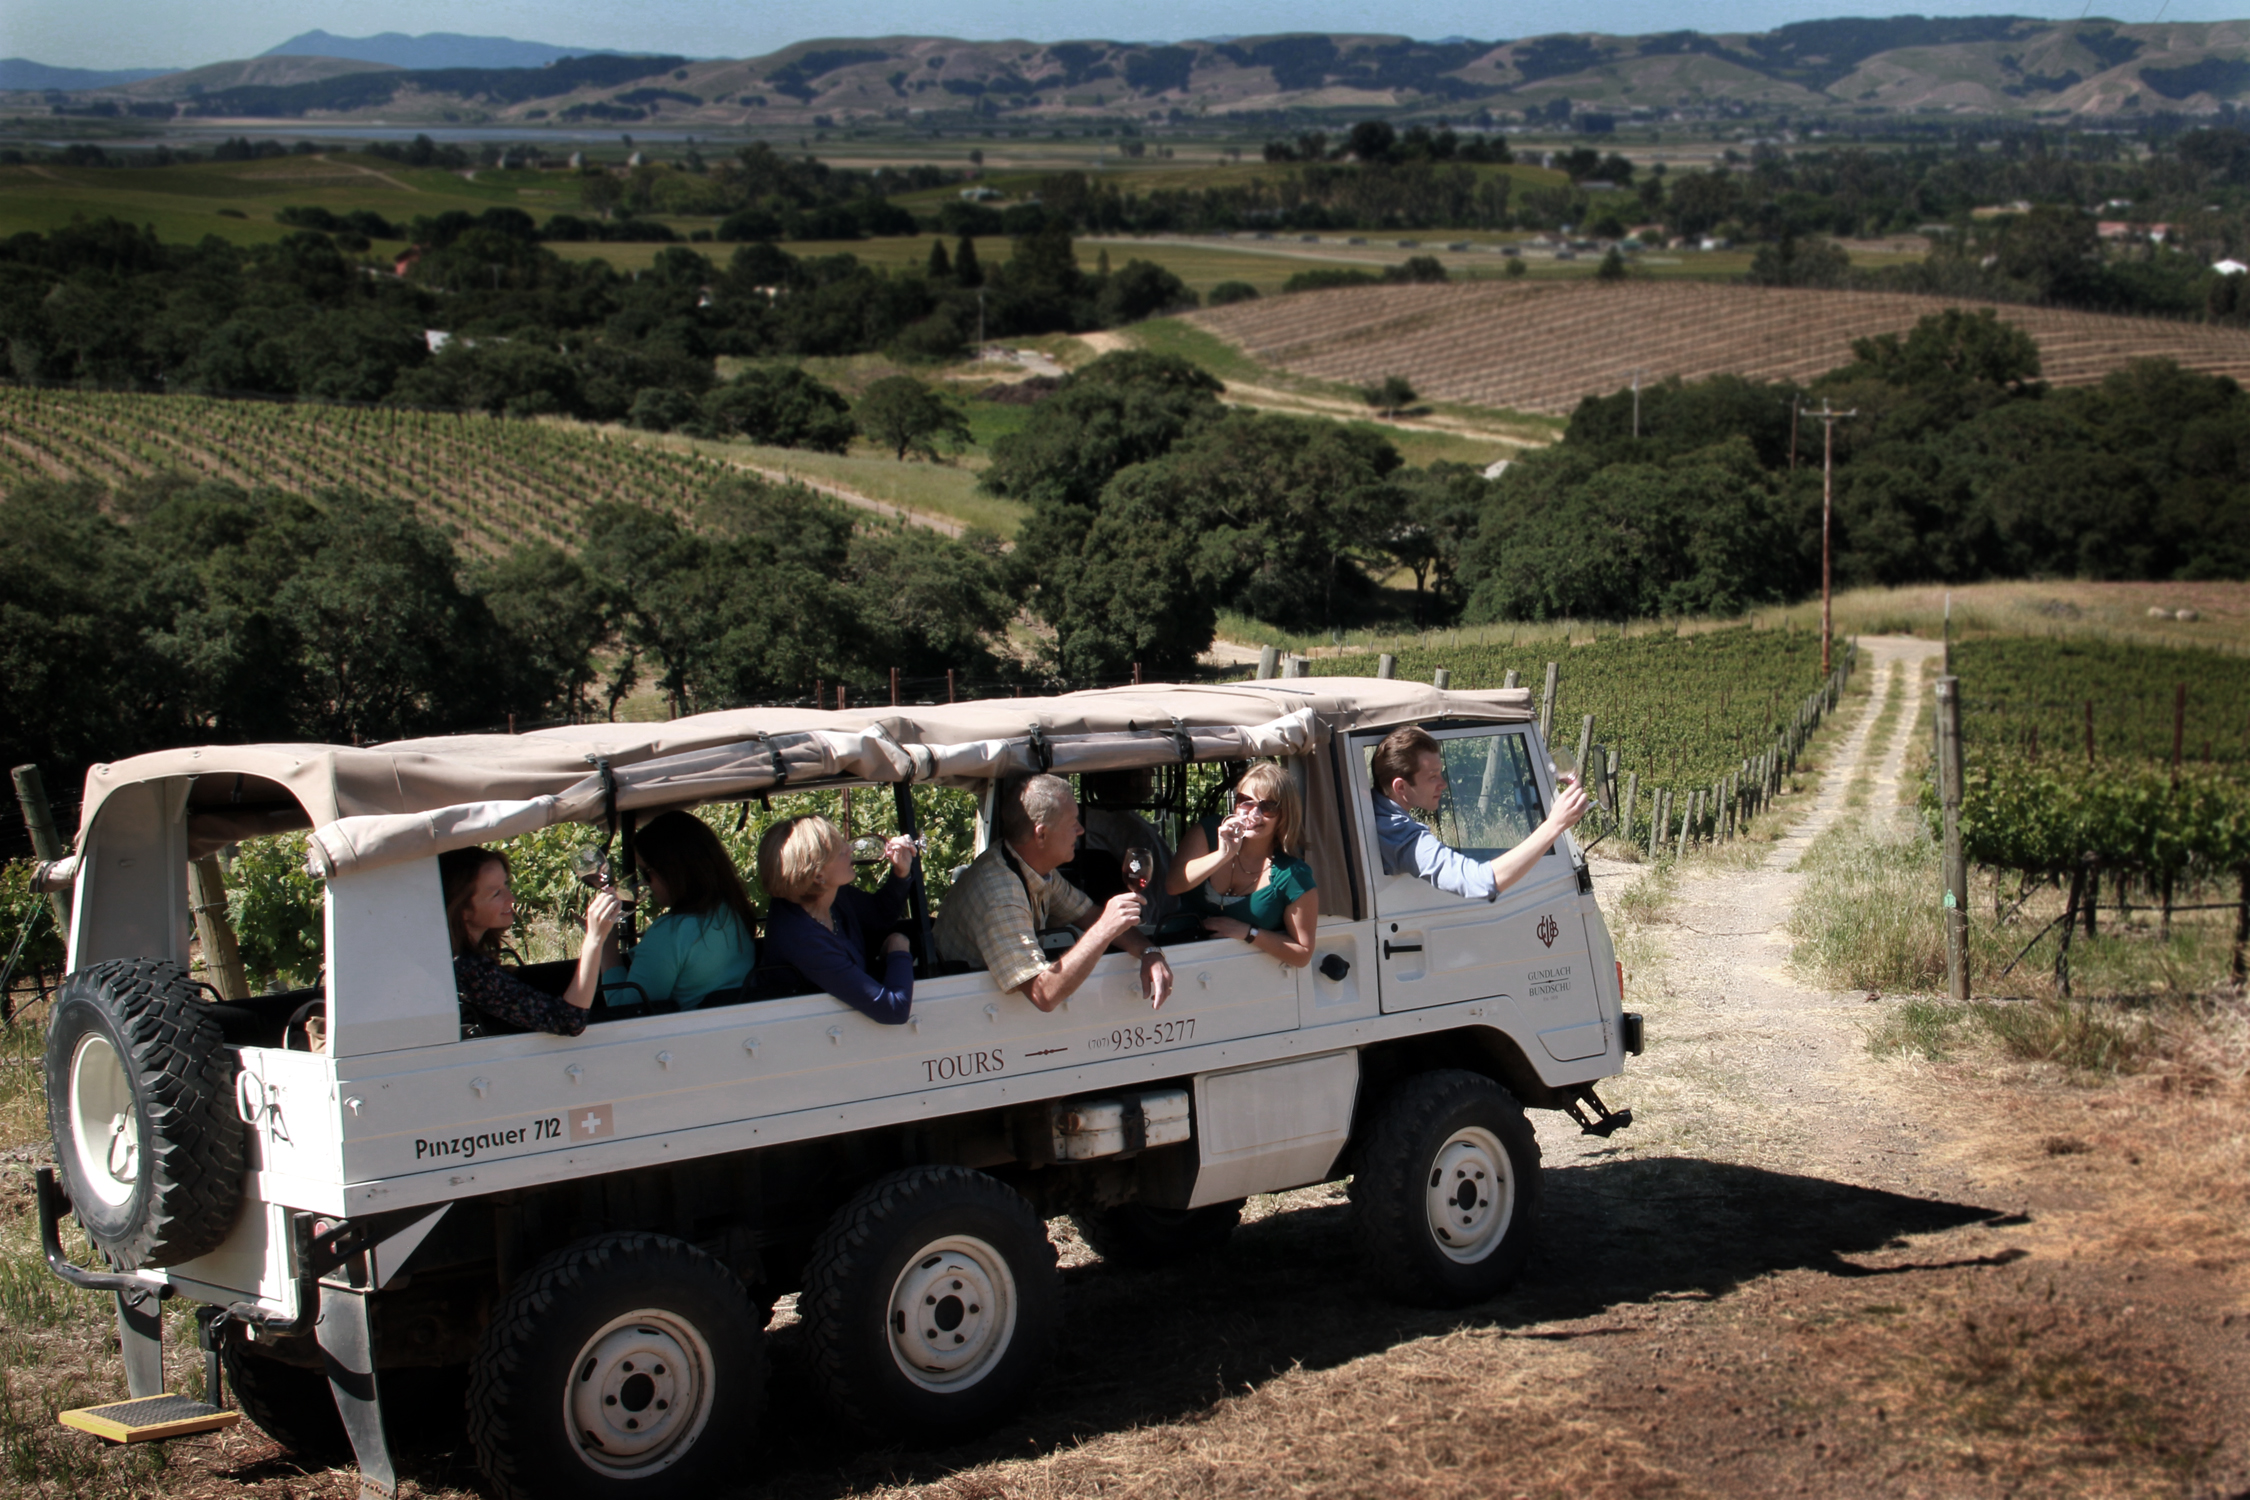 Go on a unique vineyard tour with Gundlach Bundschu Winery in Sonoma Valley, Sonoma County, California